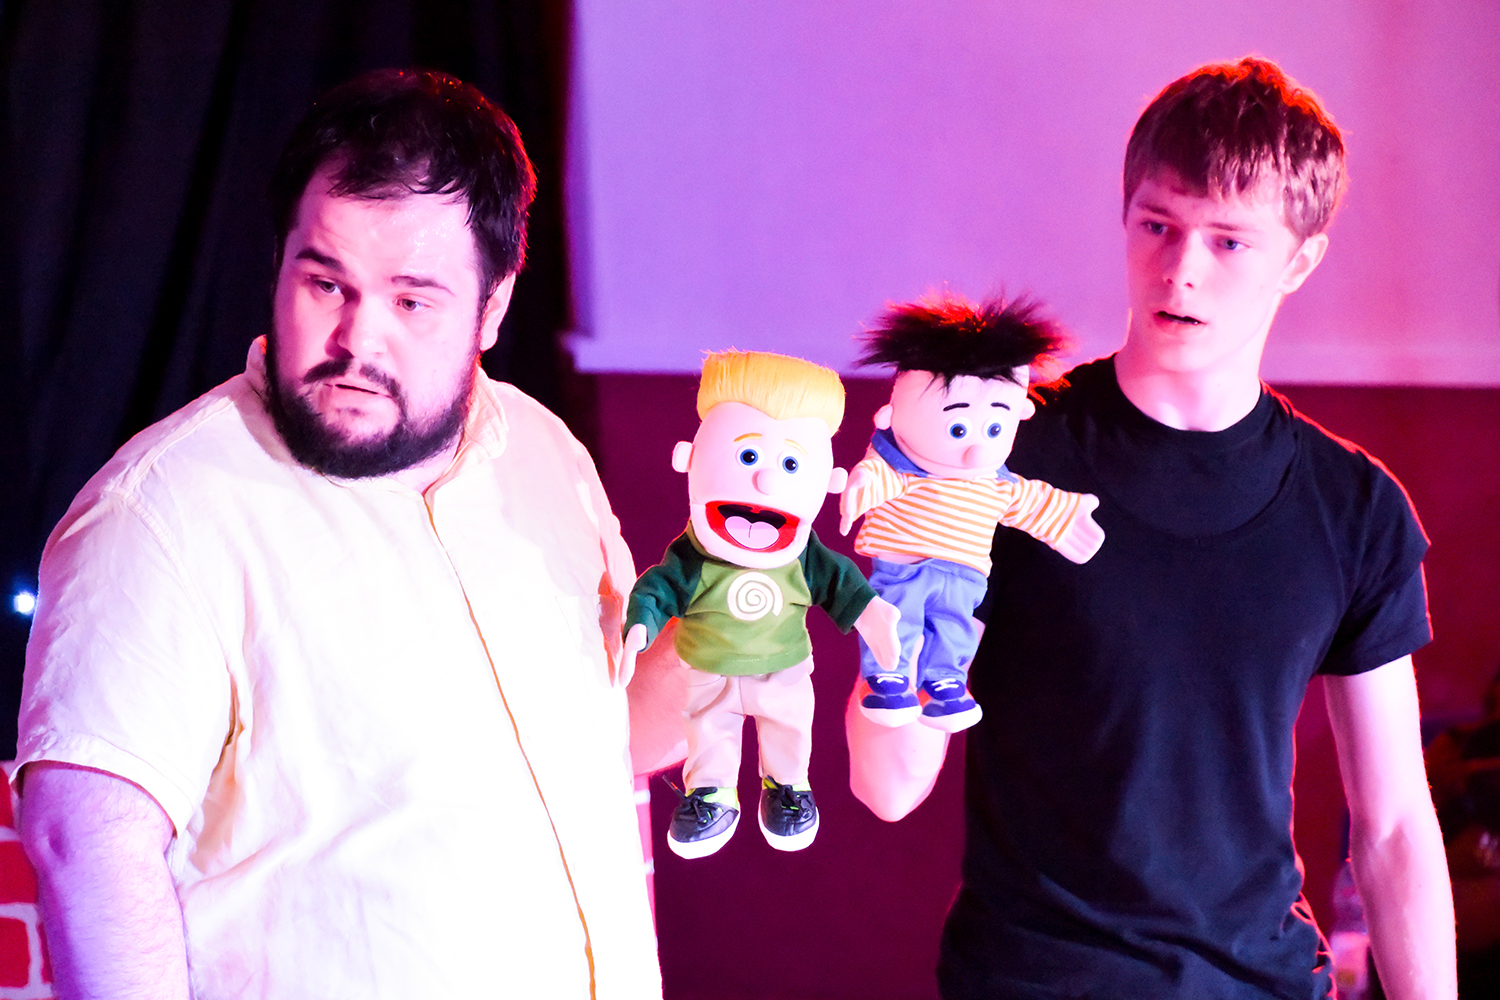 Nine Lives Theatre Company Students in performance with puppetry.